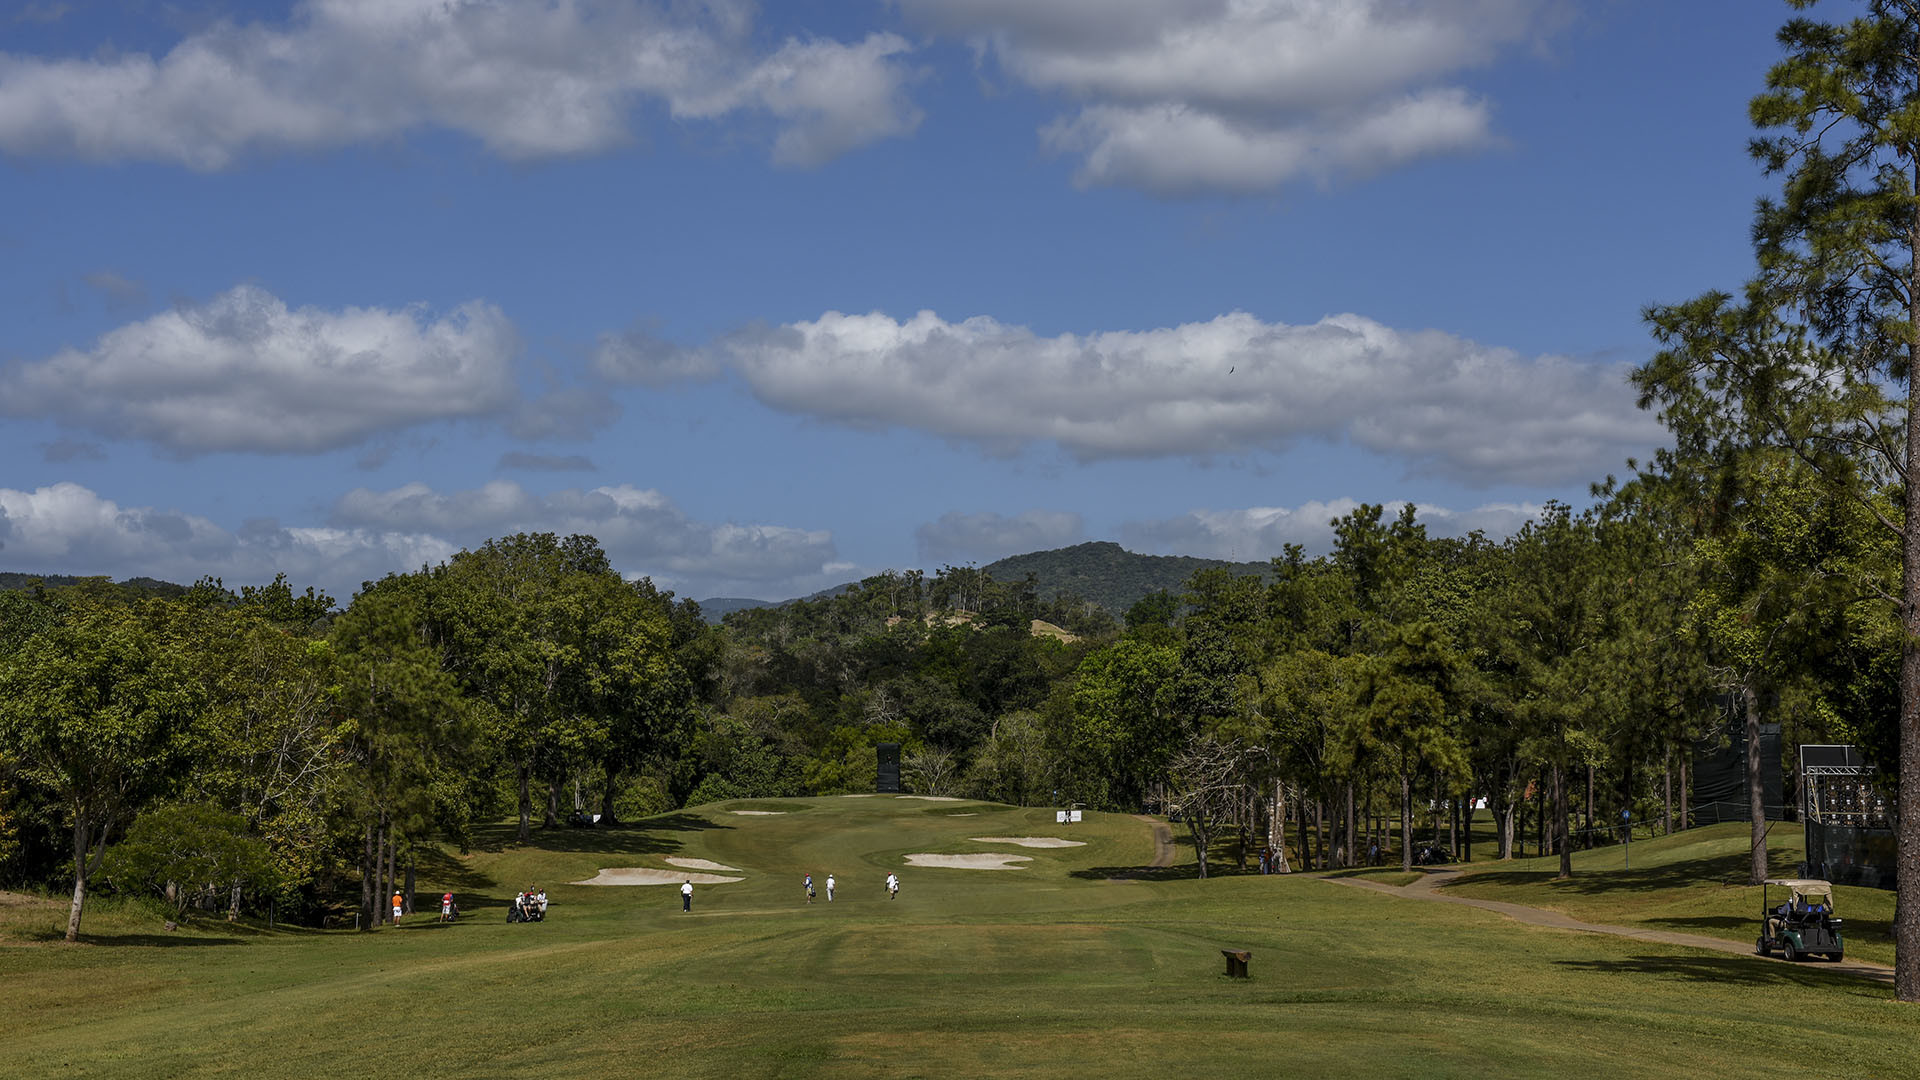 Panama City, Panama: Pictured at the 2017 Latin America Amateur  Championship at the Club